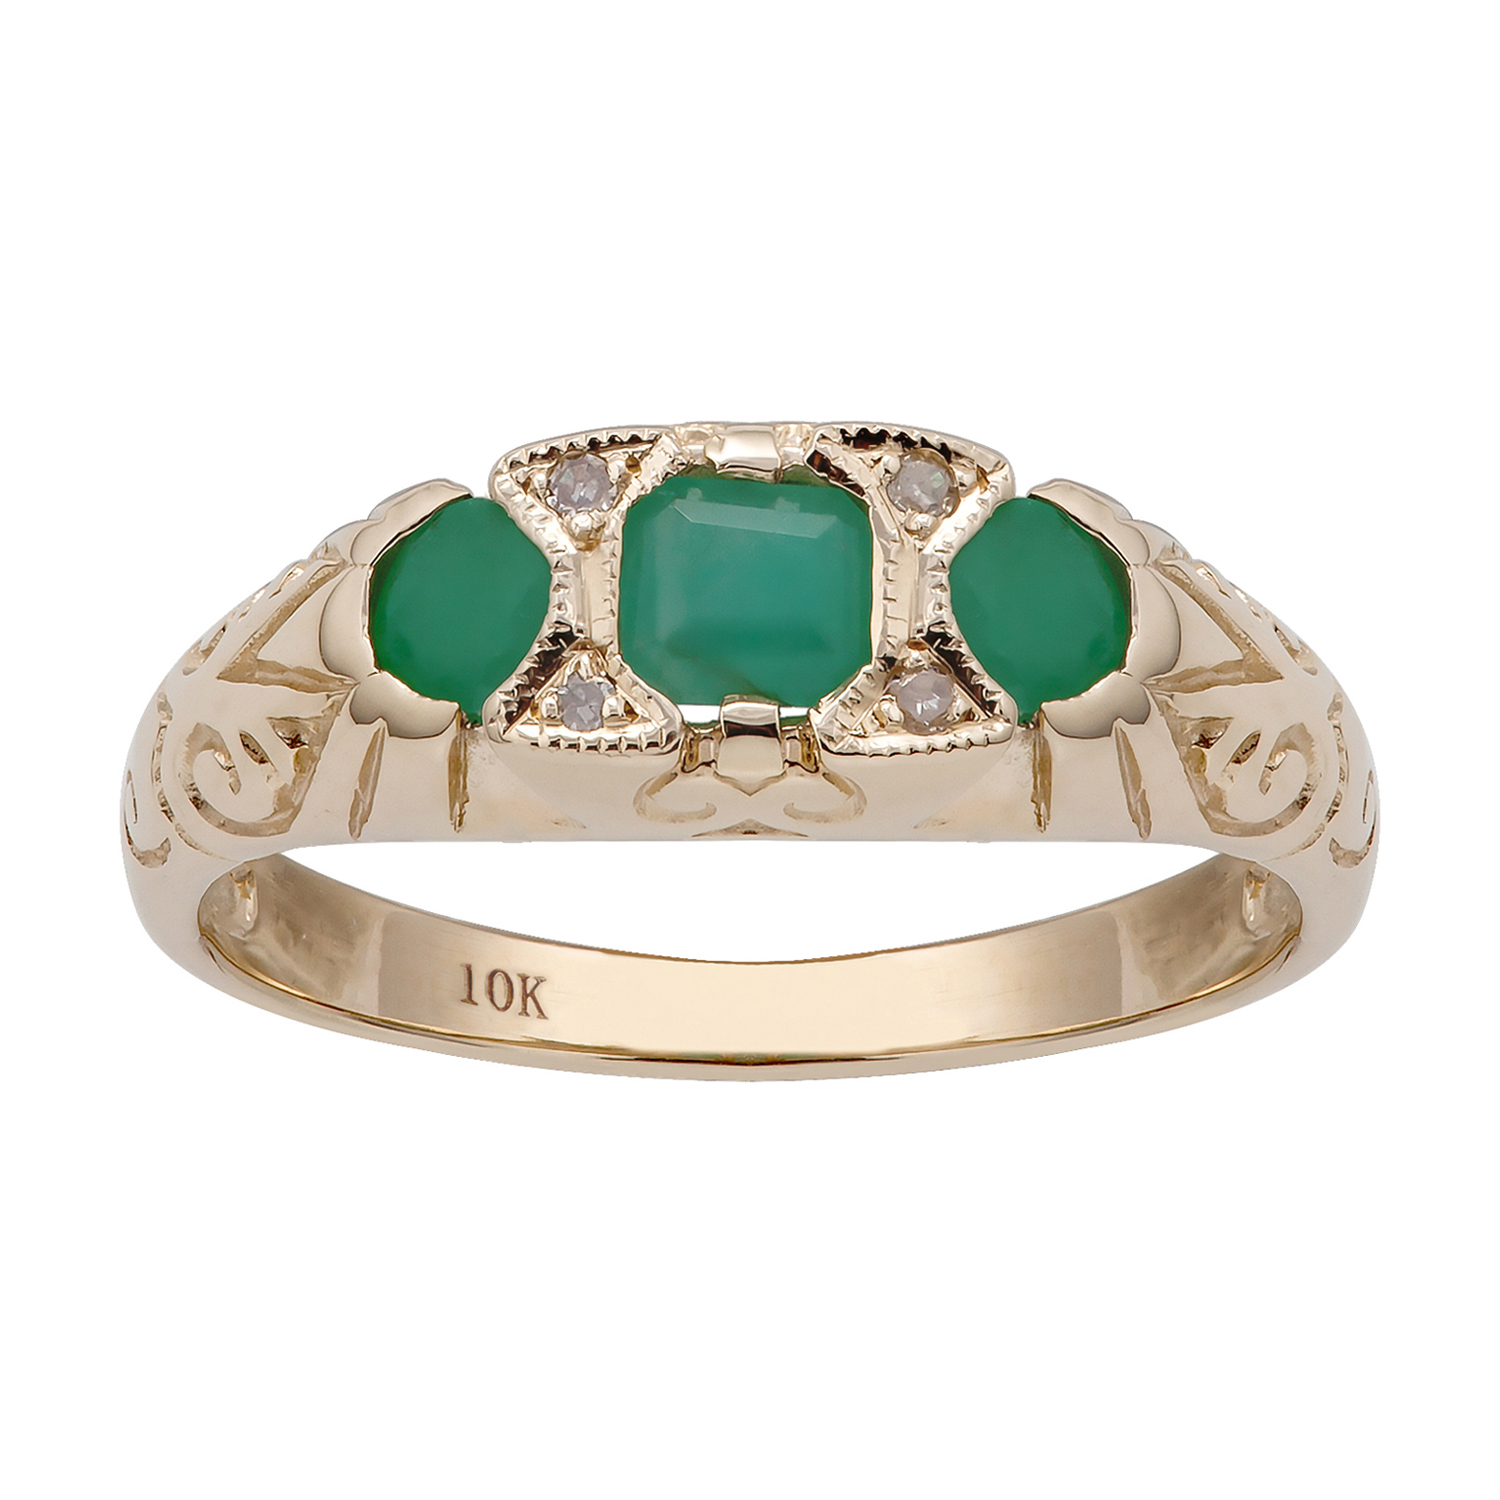 10k Yellow Gold Vintage Style Genuine Emerald and Diamond Ring size 6-10